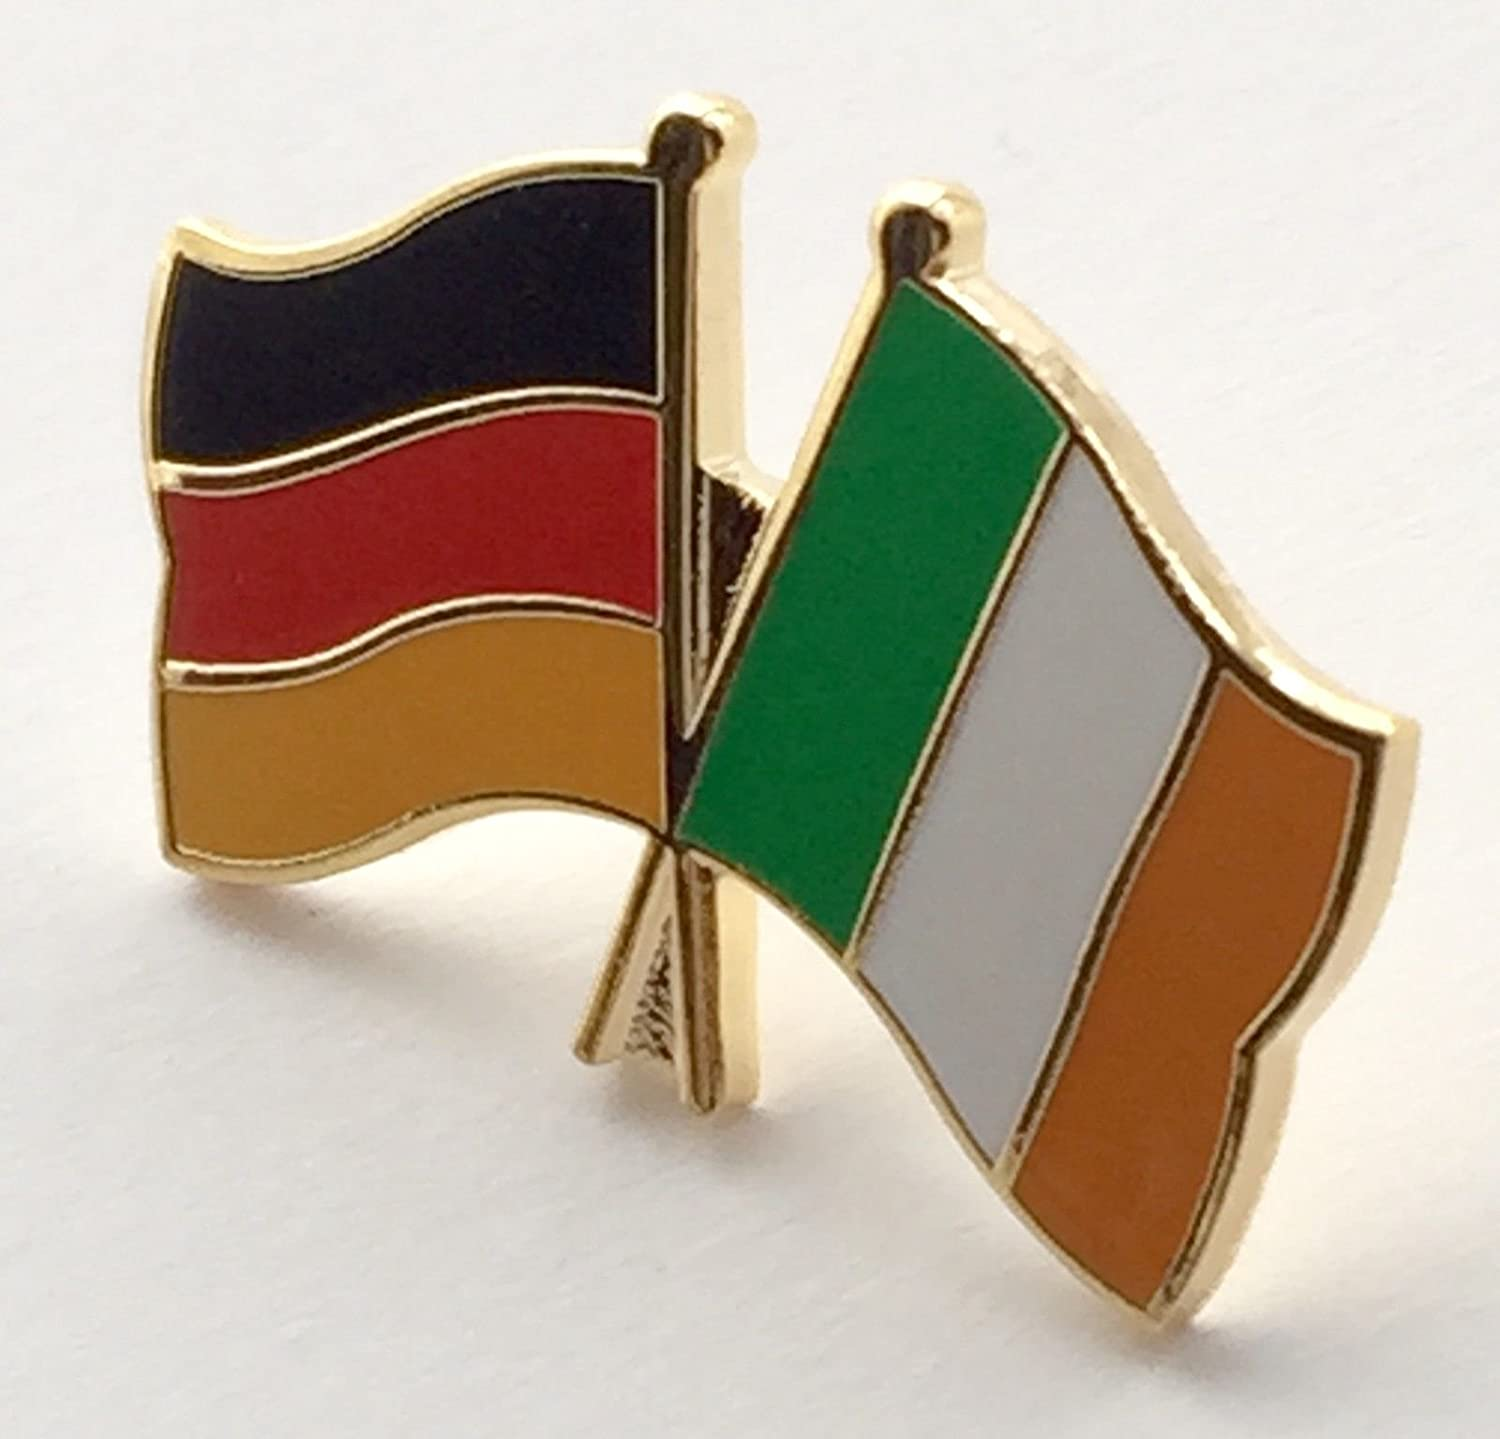 Germany /& England Friendship Flags Gold Plated Enamel Lapel Pin Badge